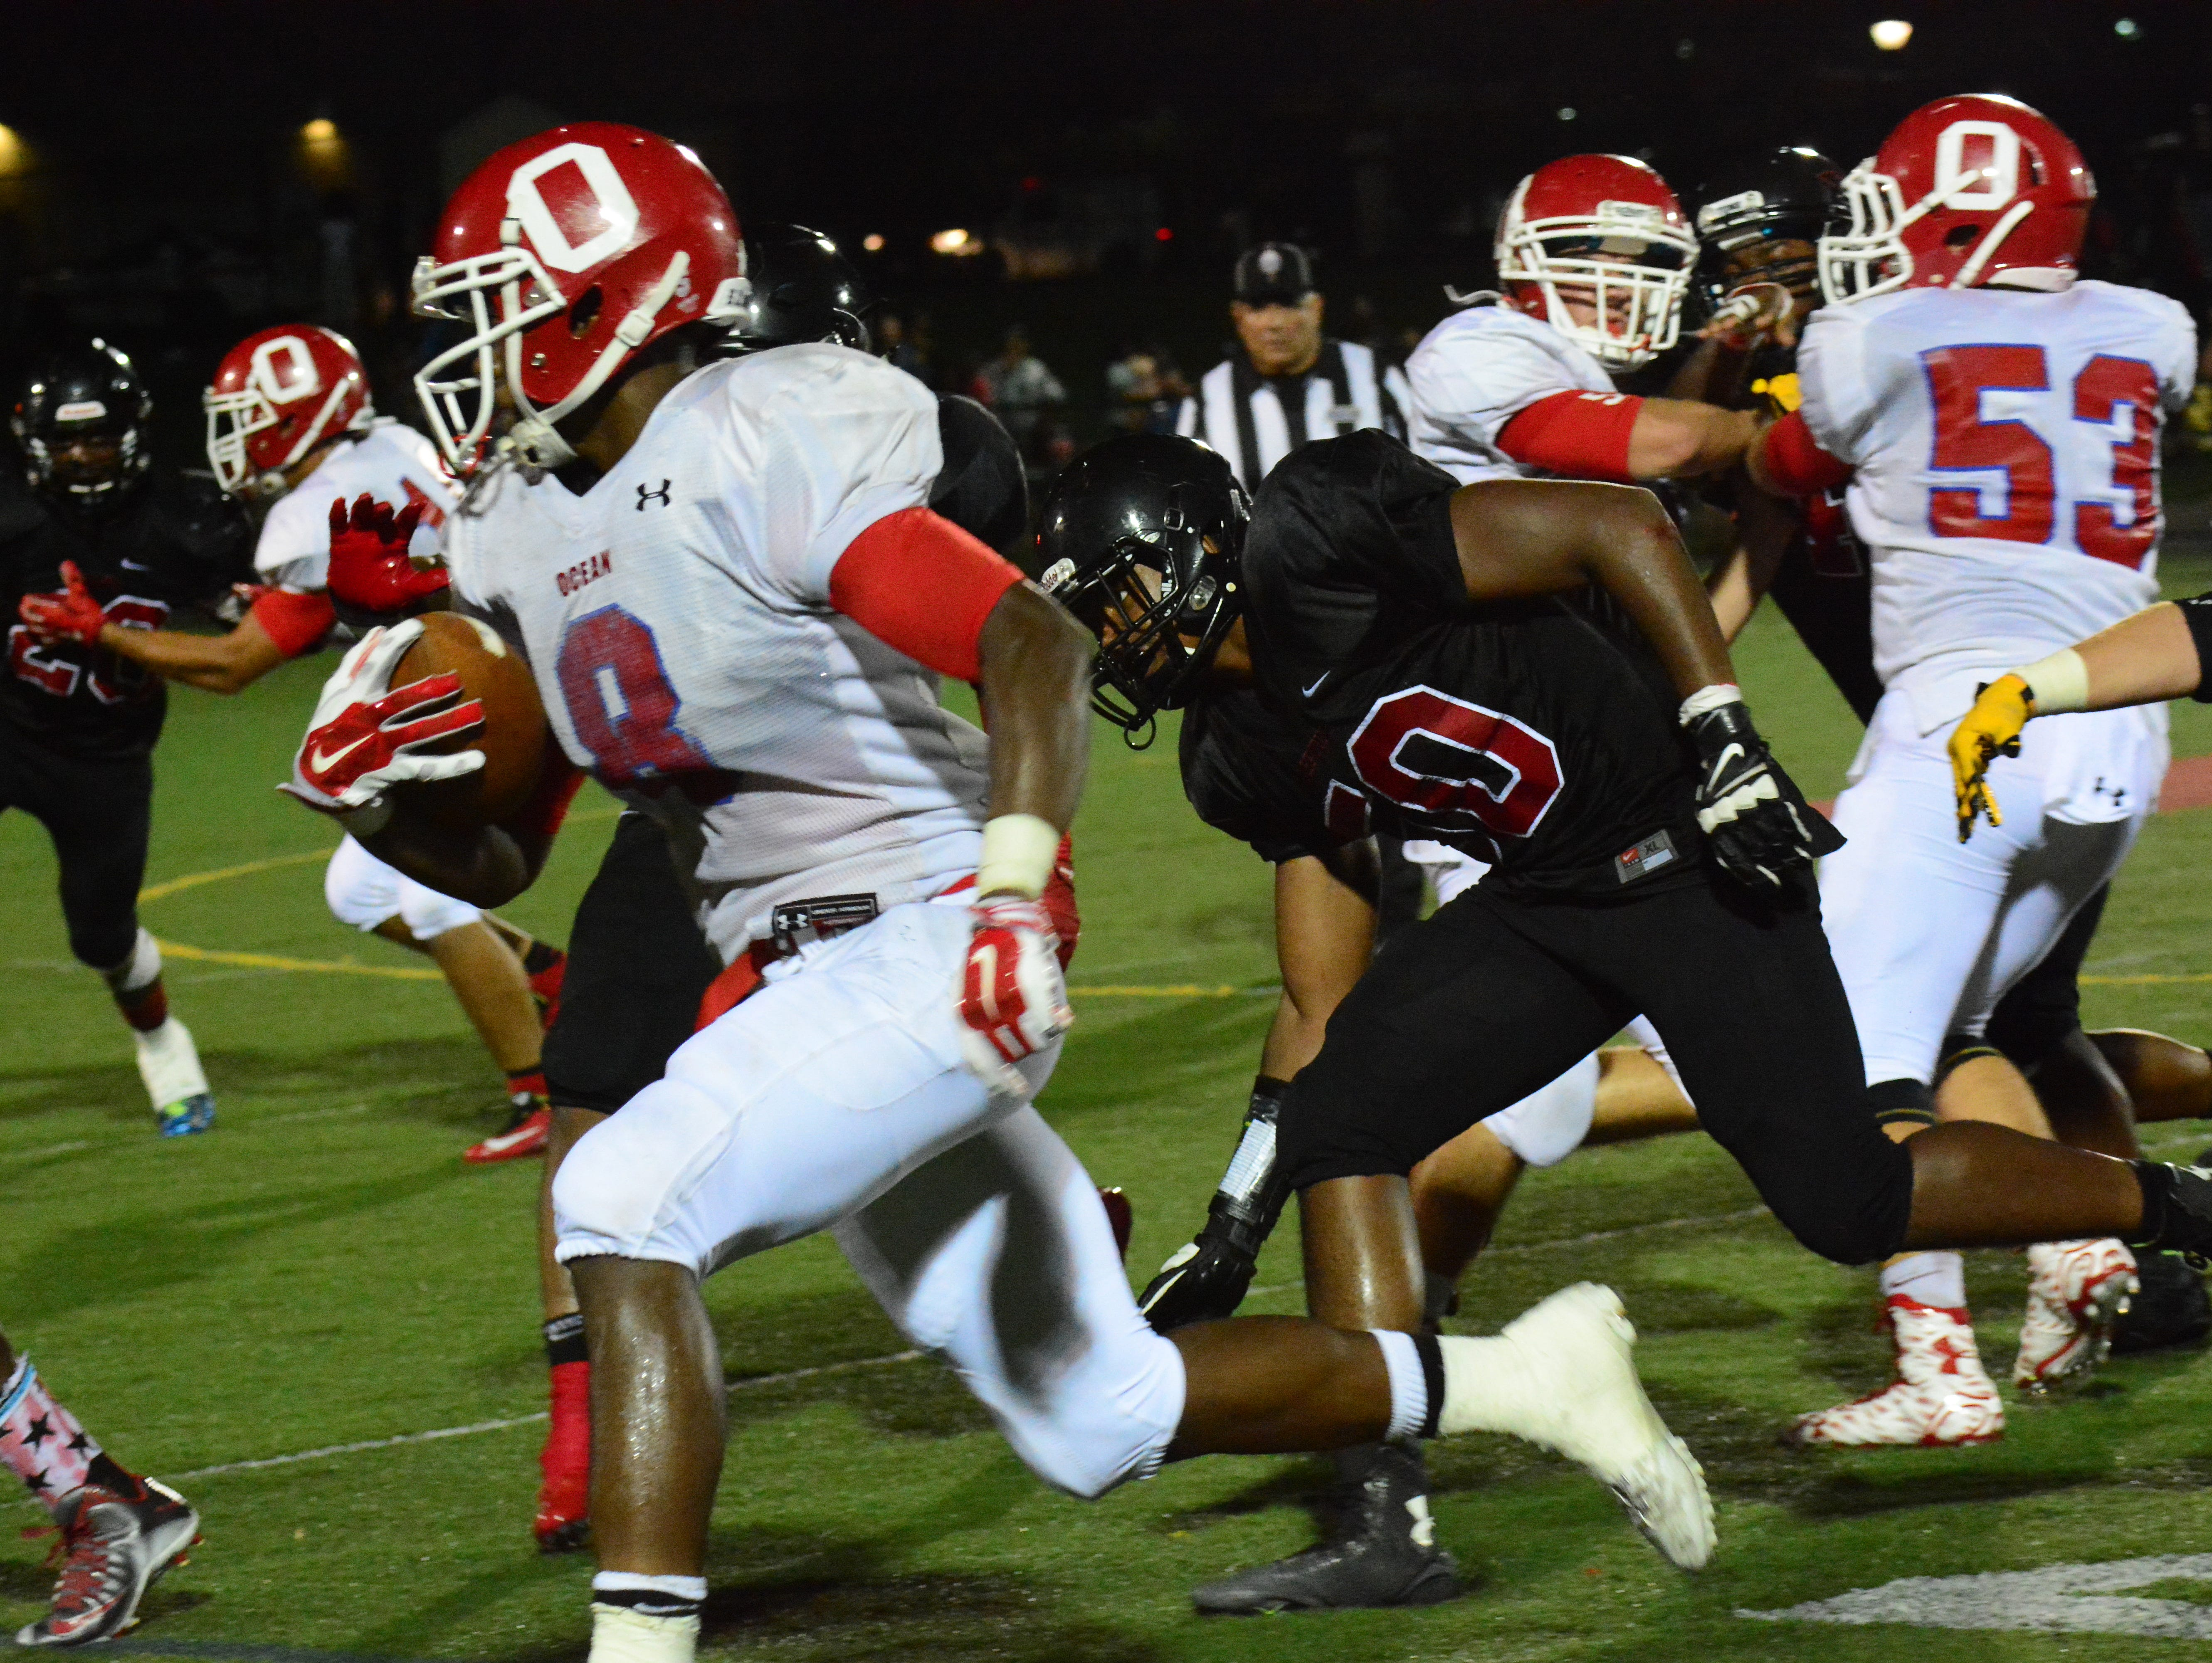 Ocean, led by senior running back Tyler Thompson, moved up one spot to No. 8 in this week's Asbury Park Press Top 10